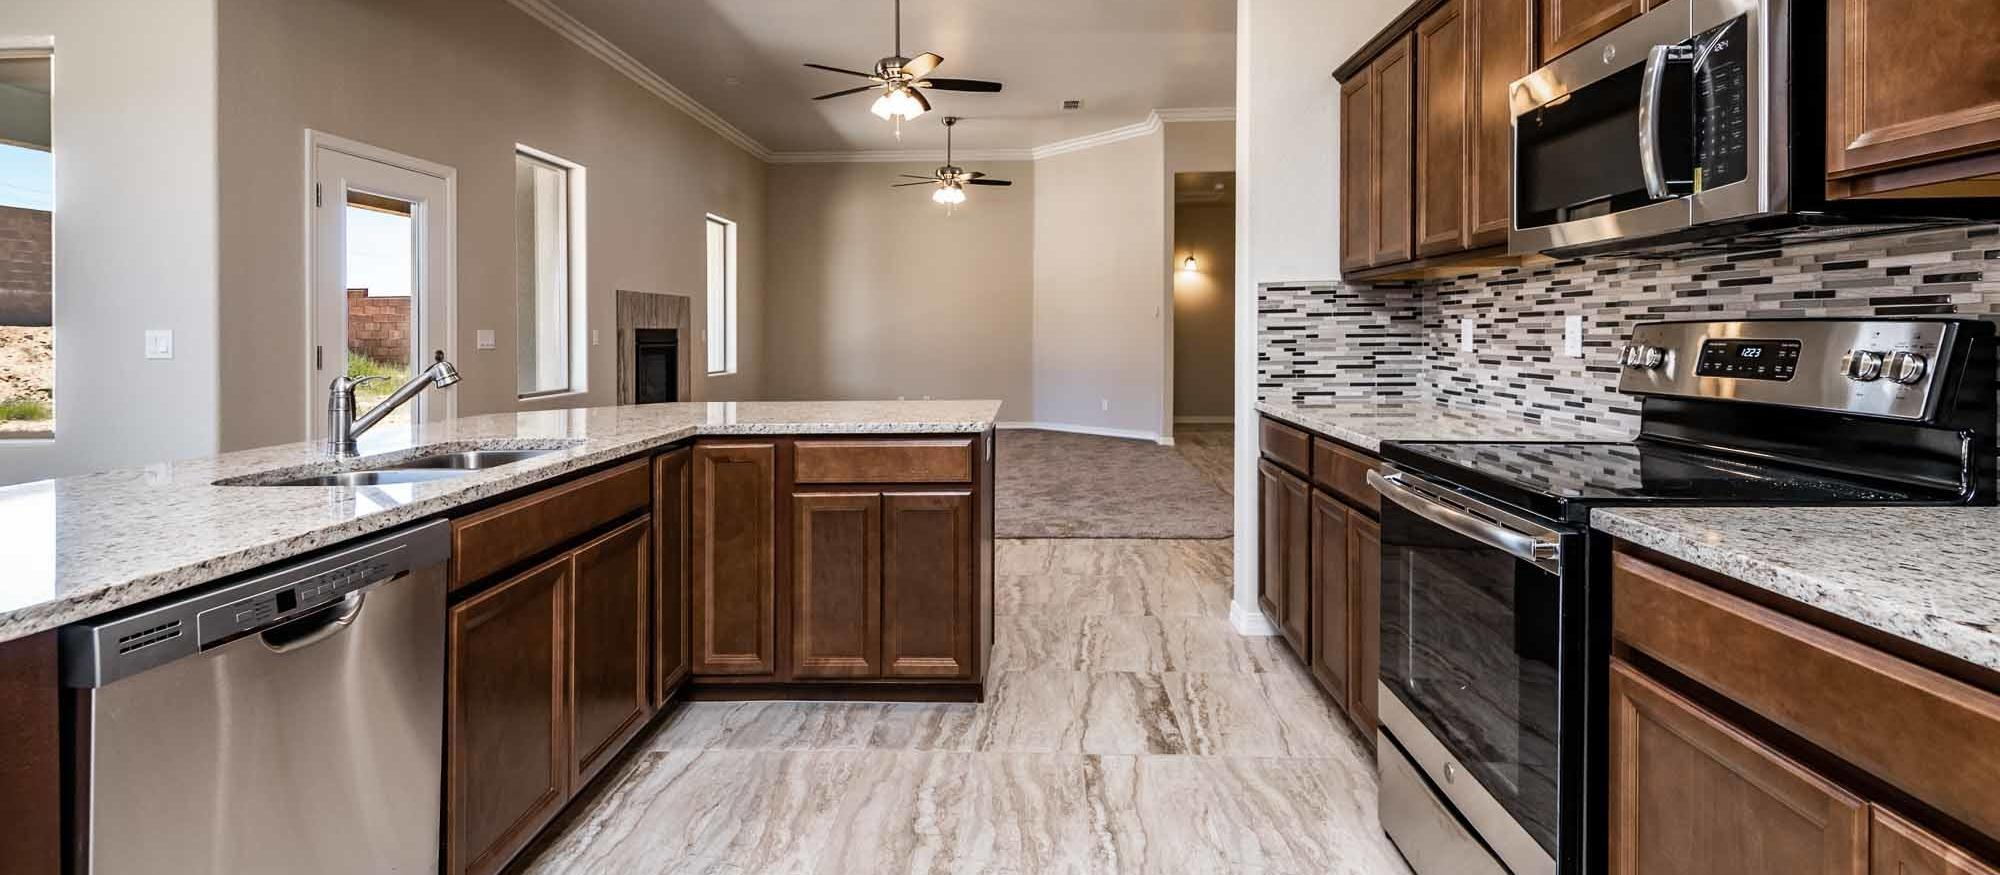 Kitchen featured in the Ocotillo 2374 By Angle Homes in Kingman-Lake Havasu City, AZ